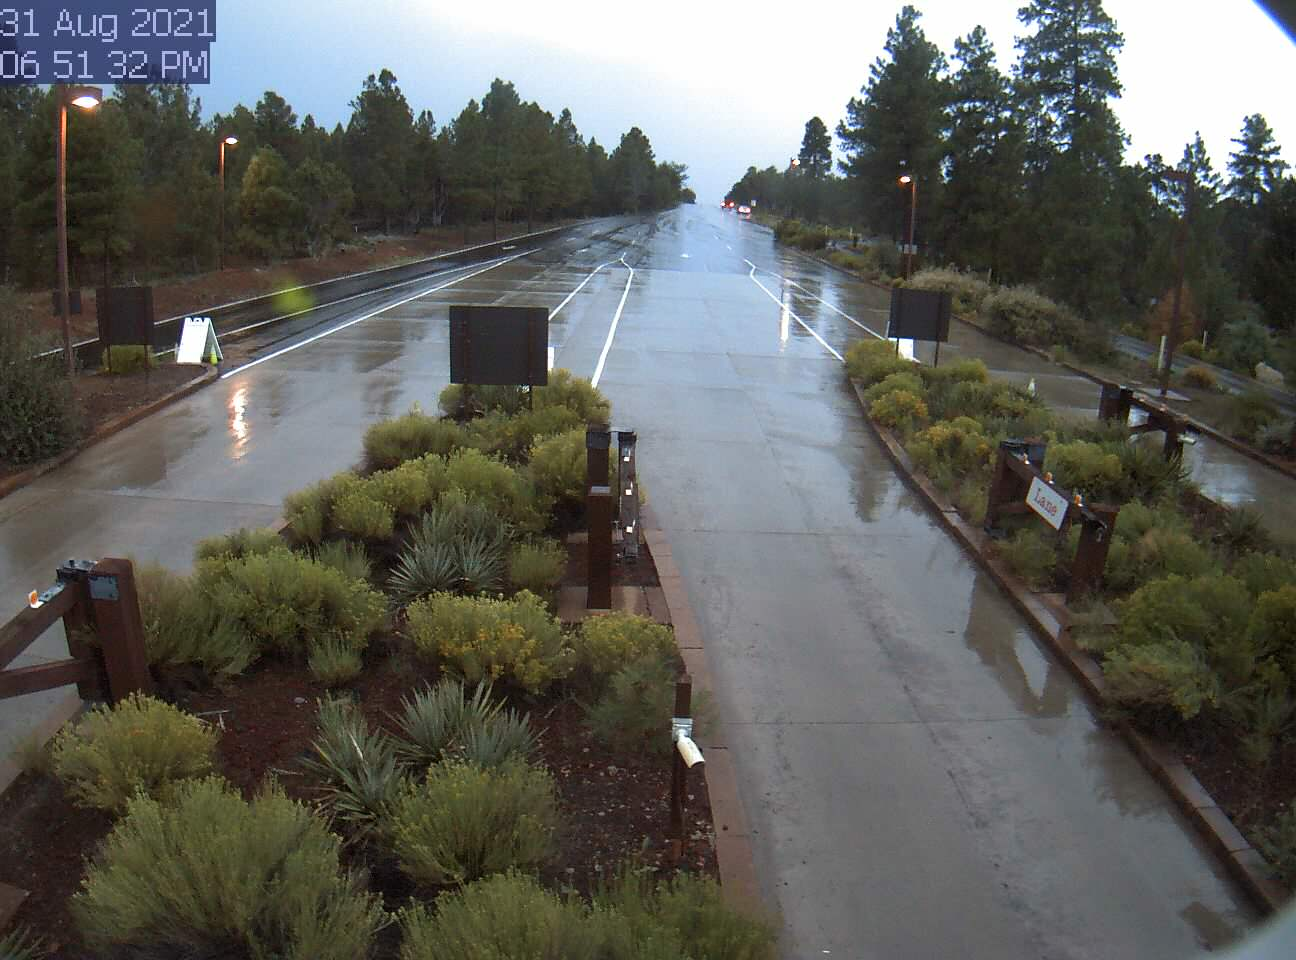 live view from Grand Canyon National Park South Entrance Station on the South Rim